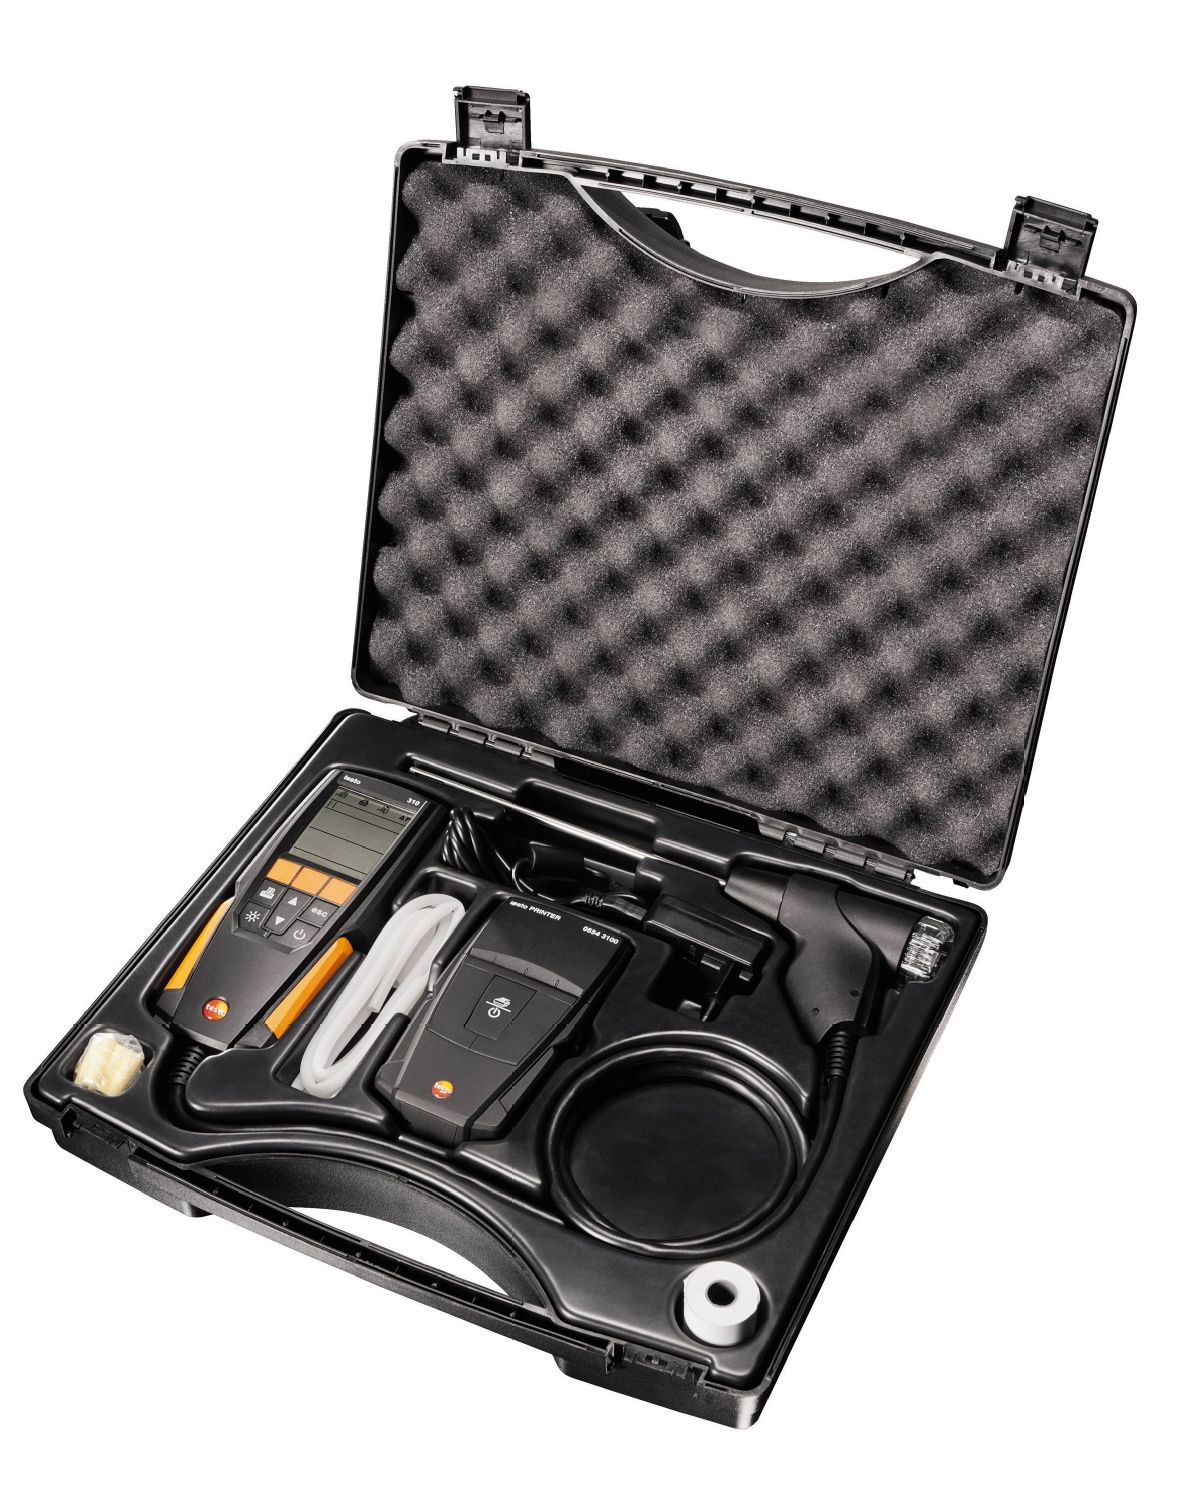 testo 310 set with printer